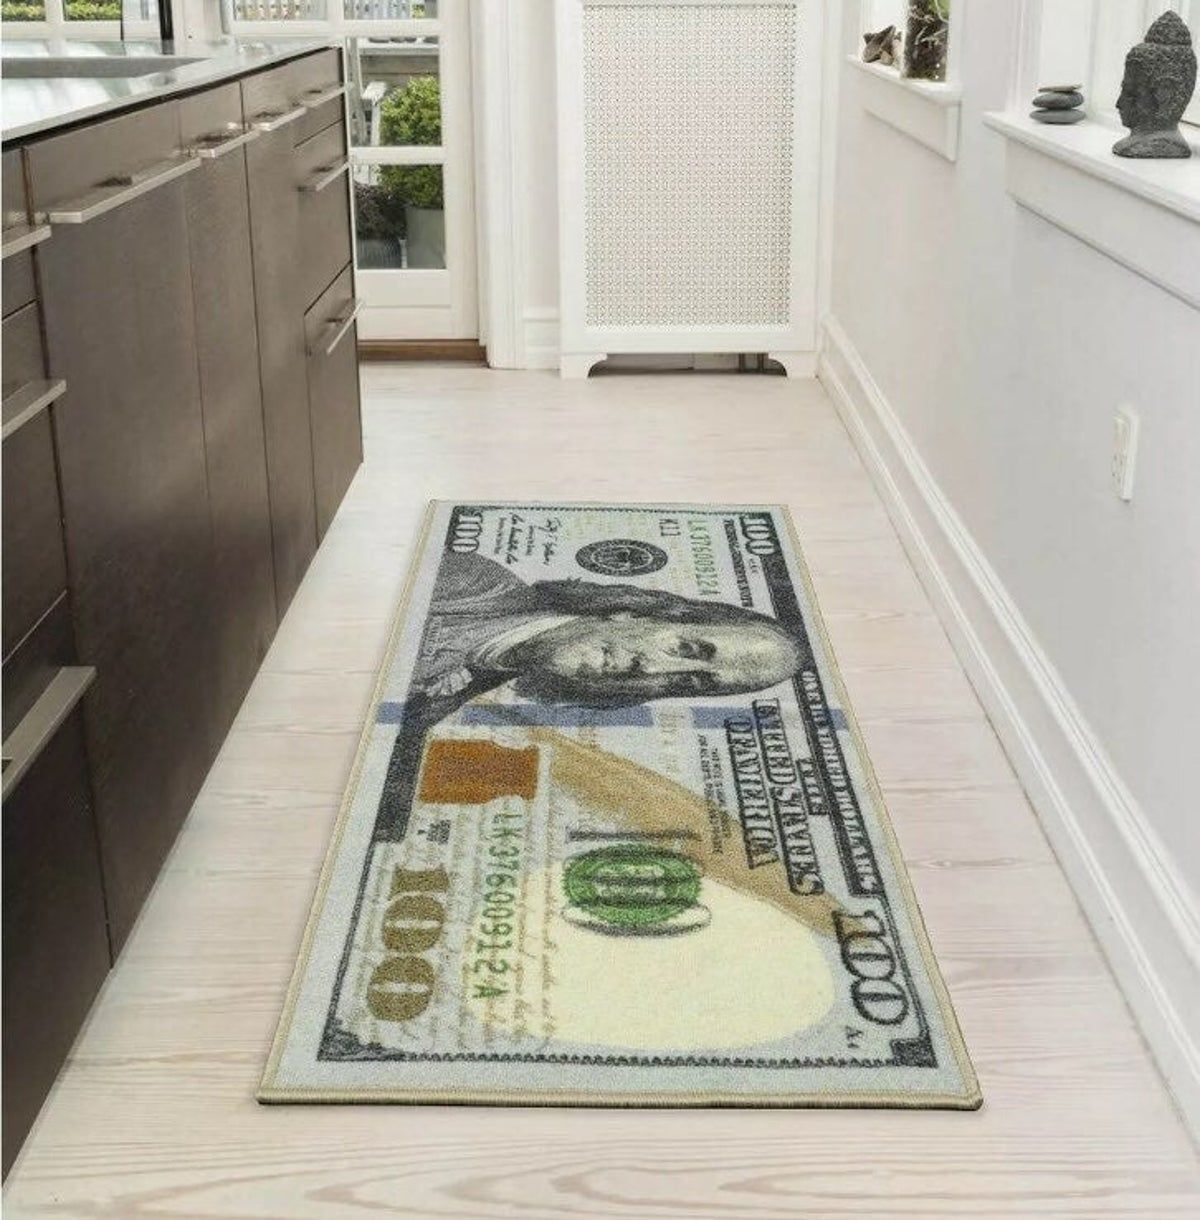 Pin By Dana On Cosas Random In 2020 Cool Rugs College Gifts Rug Runner